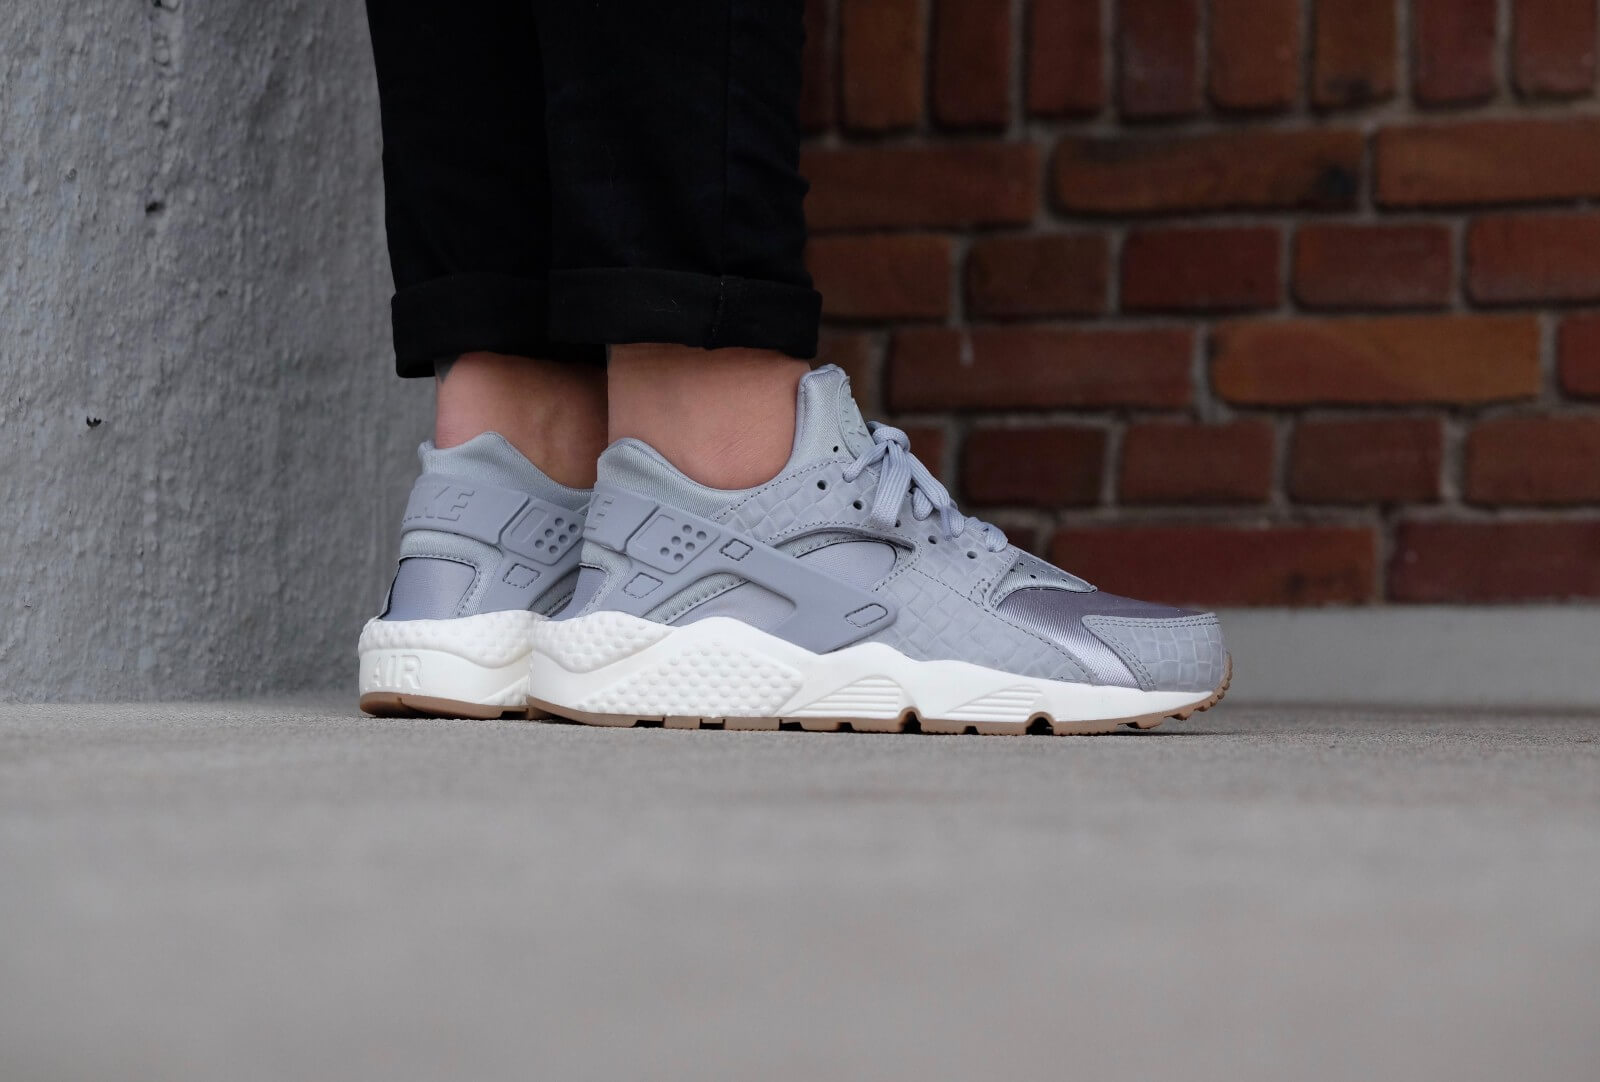 Nike WMNS Air Huarache Run PRM Wolf greywolf grey sail gum med brown 683818 012